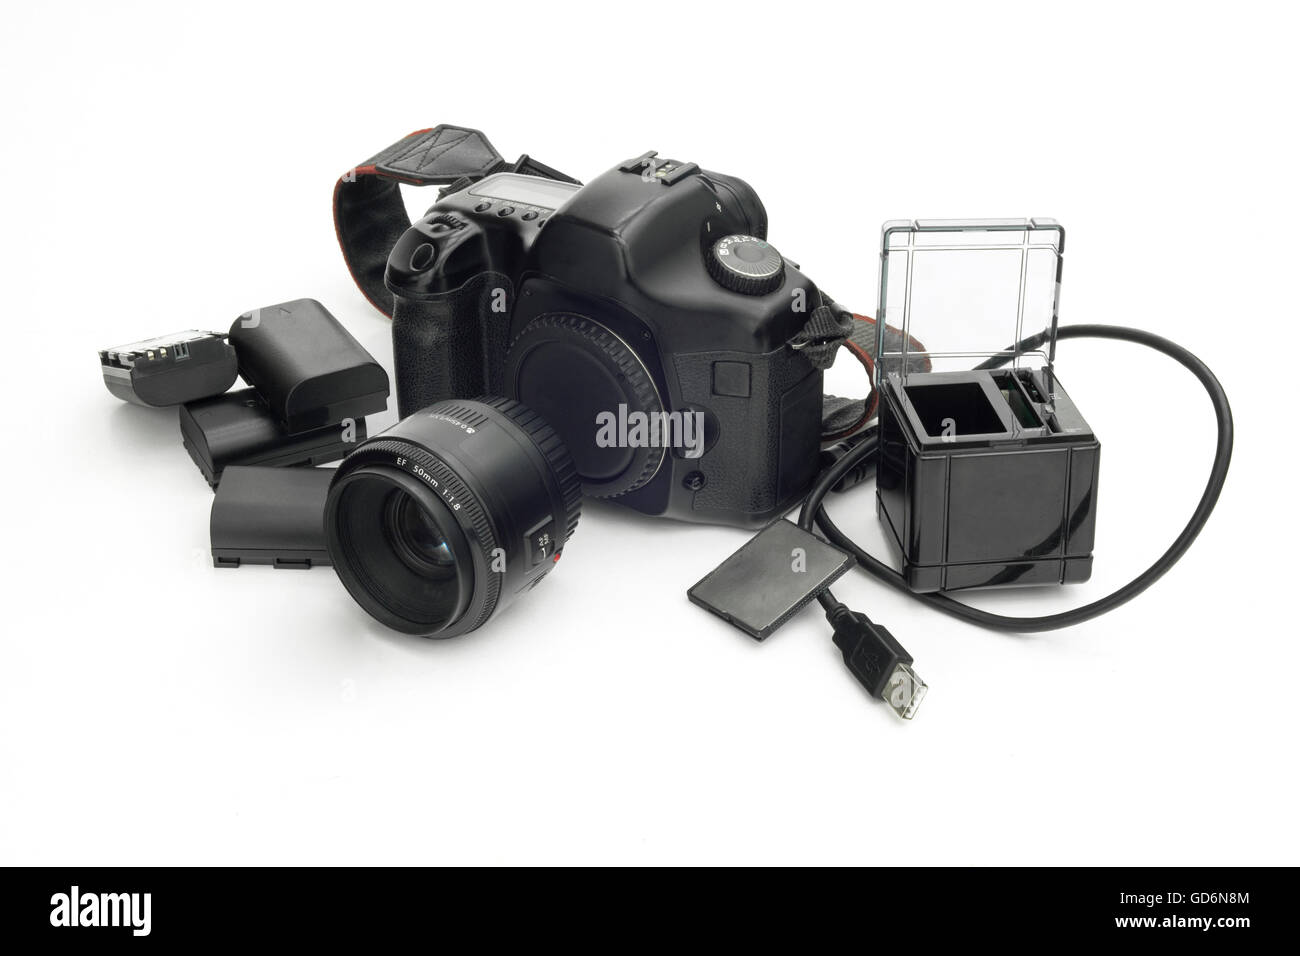 Photographic camera reflex with lens, lithium batteries, SD card and cube to transfer data to PC on white isolated - Stock Image